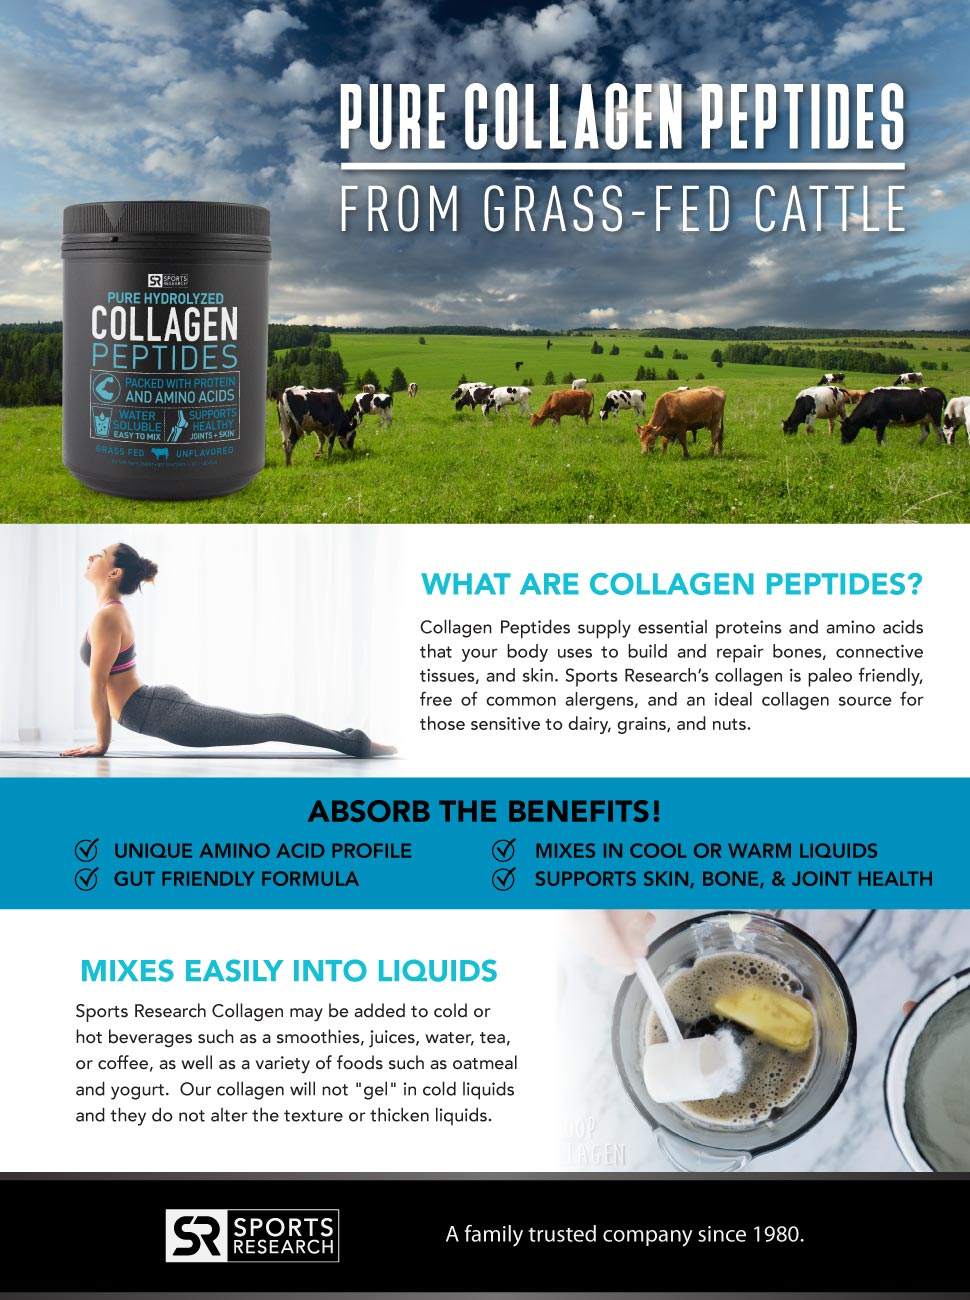 Collagen research